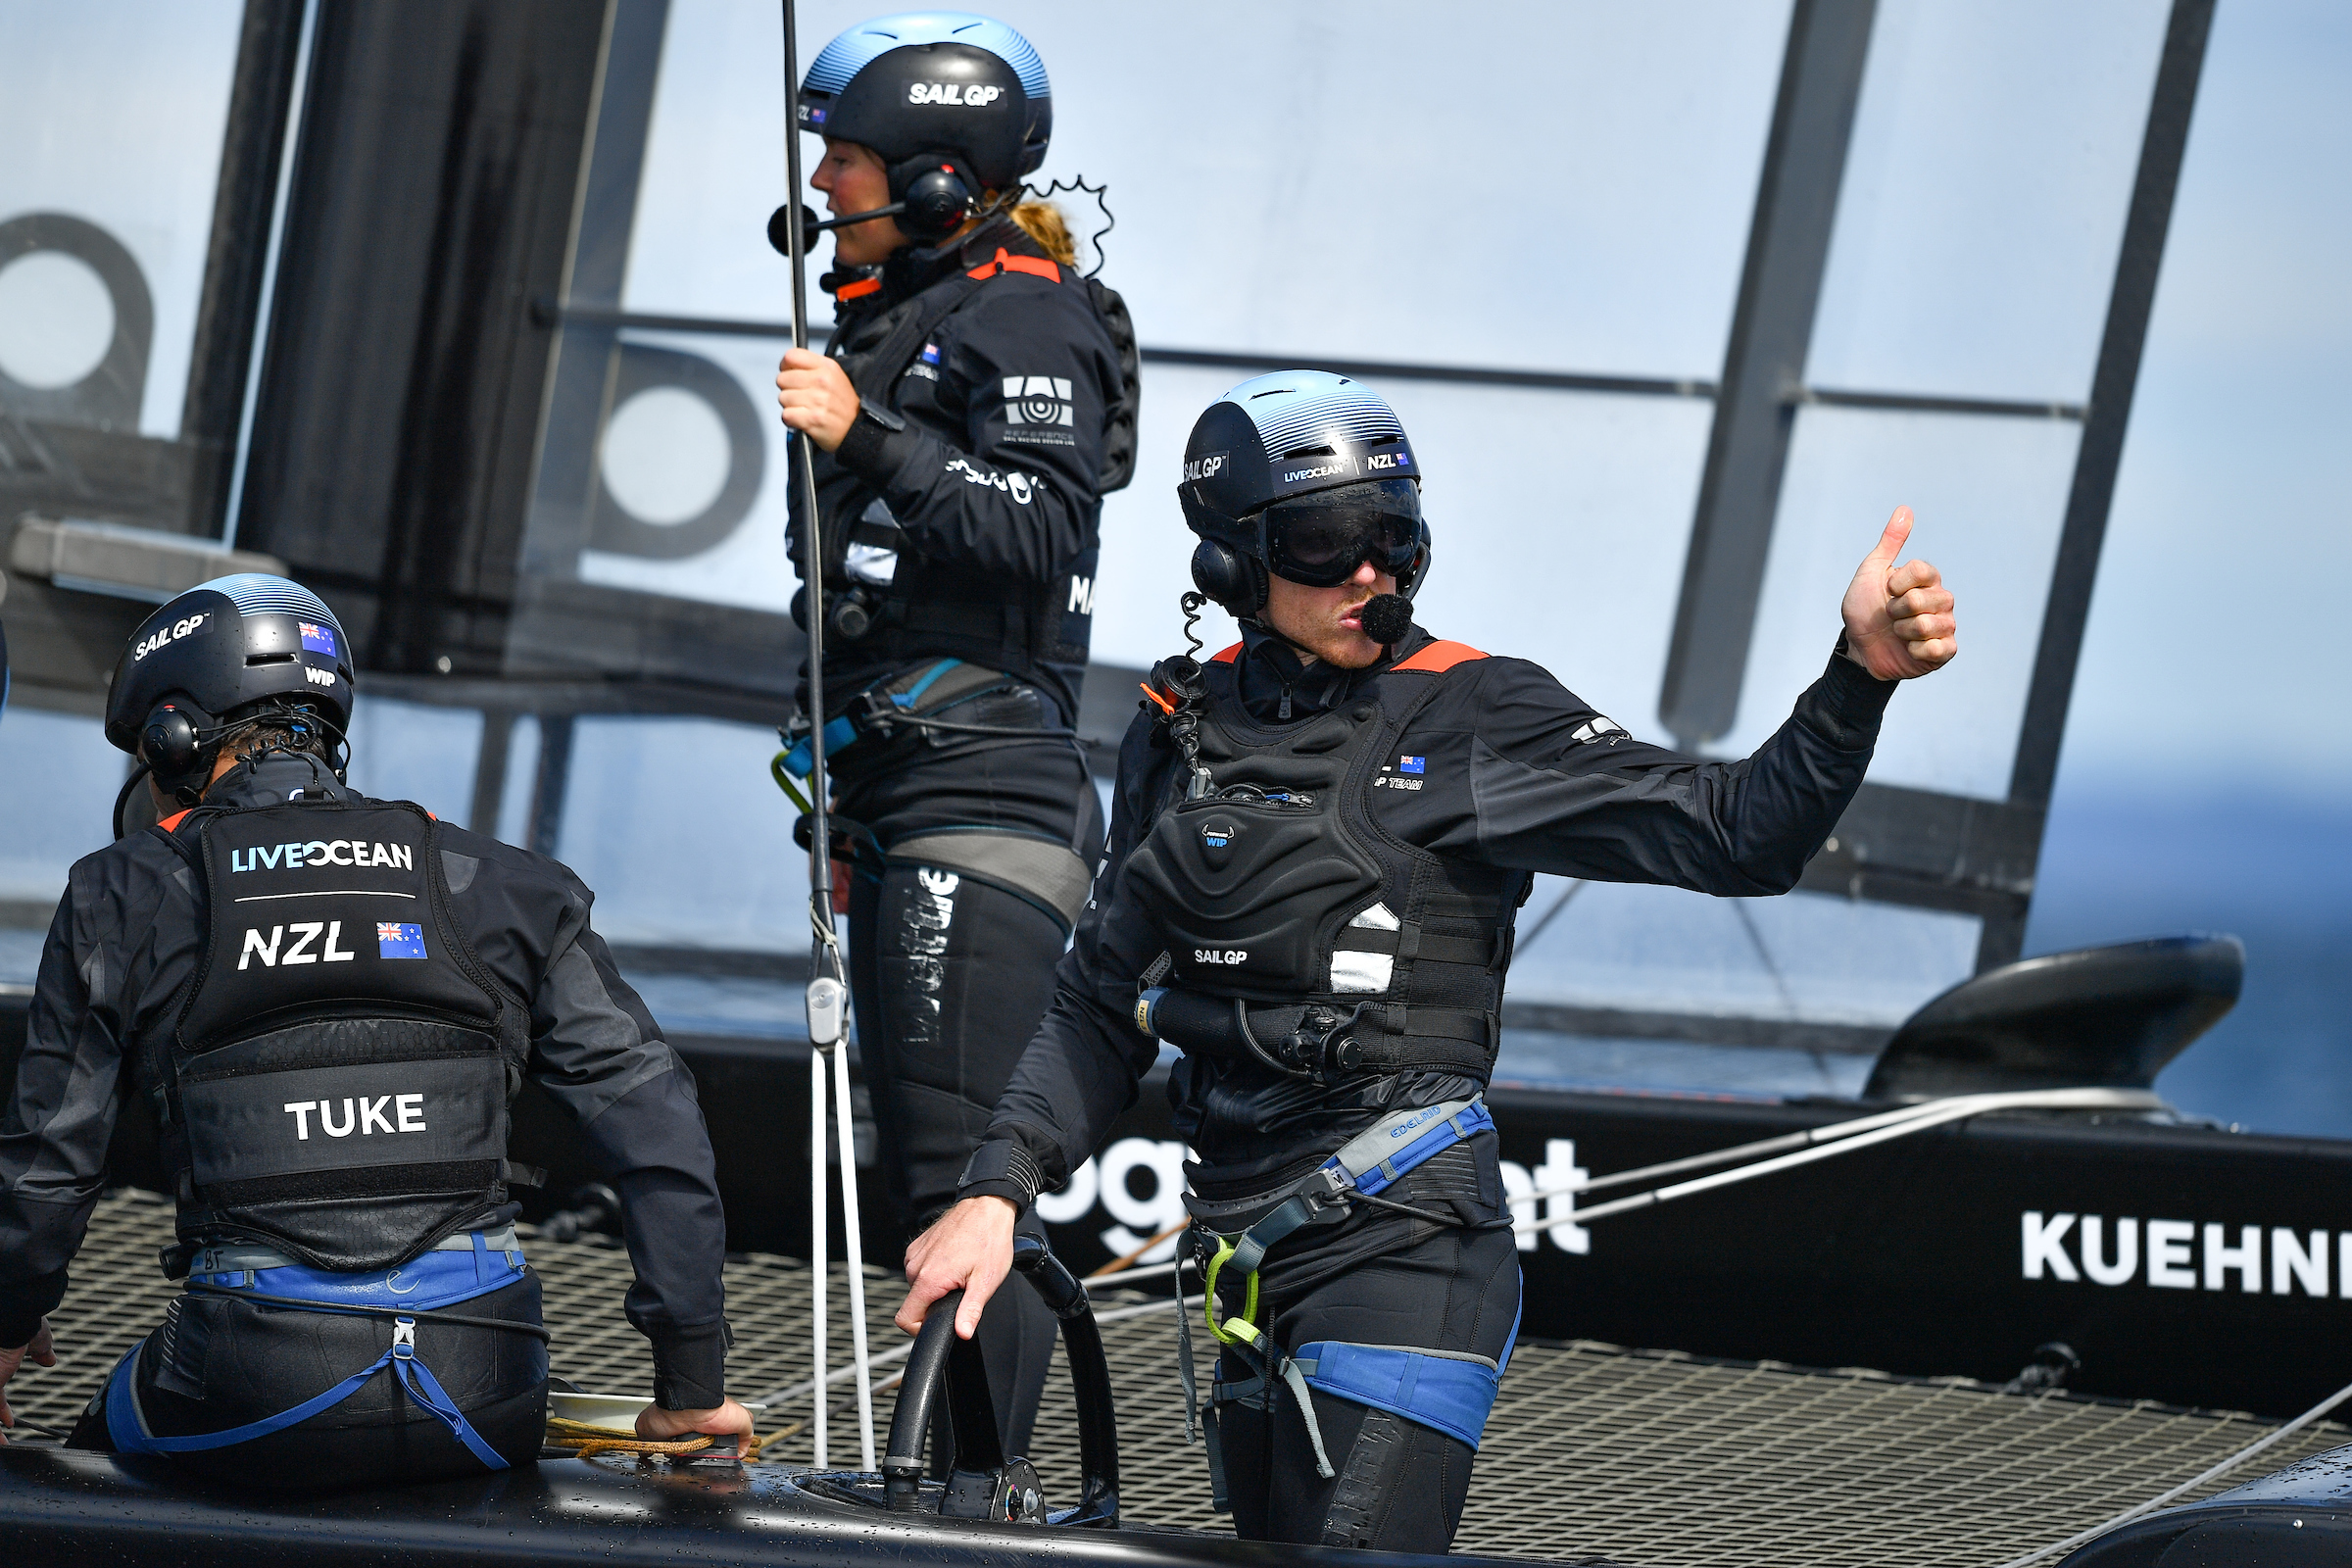 New Zealand SailGP Team in action during a practice session ahead of Denmark SailGP, Event 4, Season 2 in Aarhus, Denmark 17 August 2021. Photo: Ricardo Pinto for SailGP. Handout image supplied by SailGP